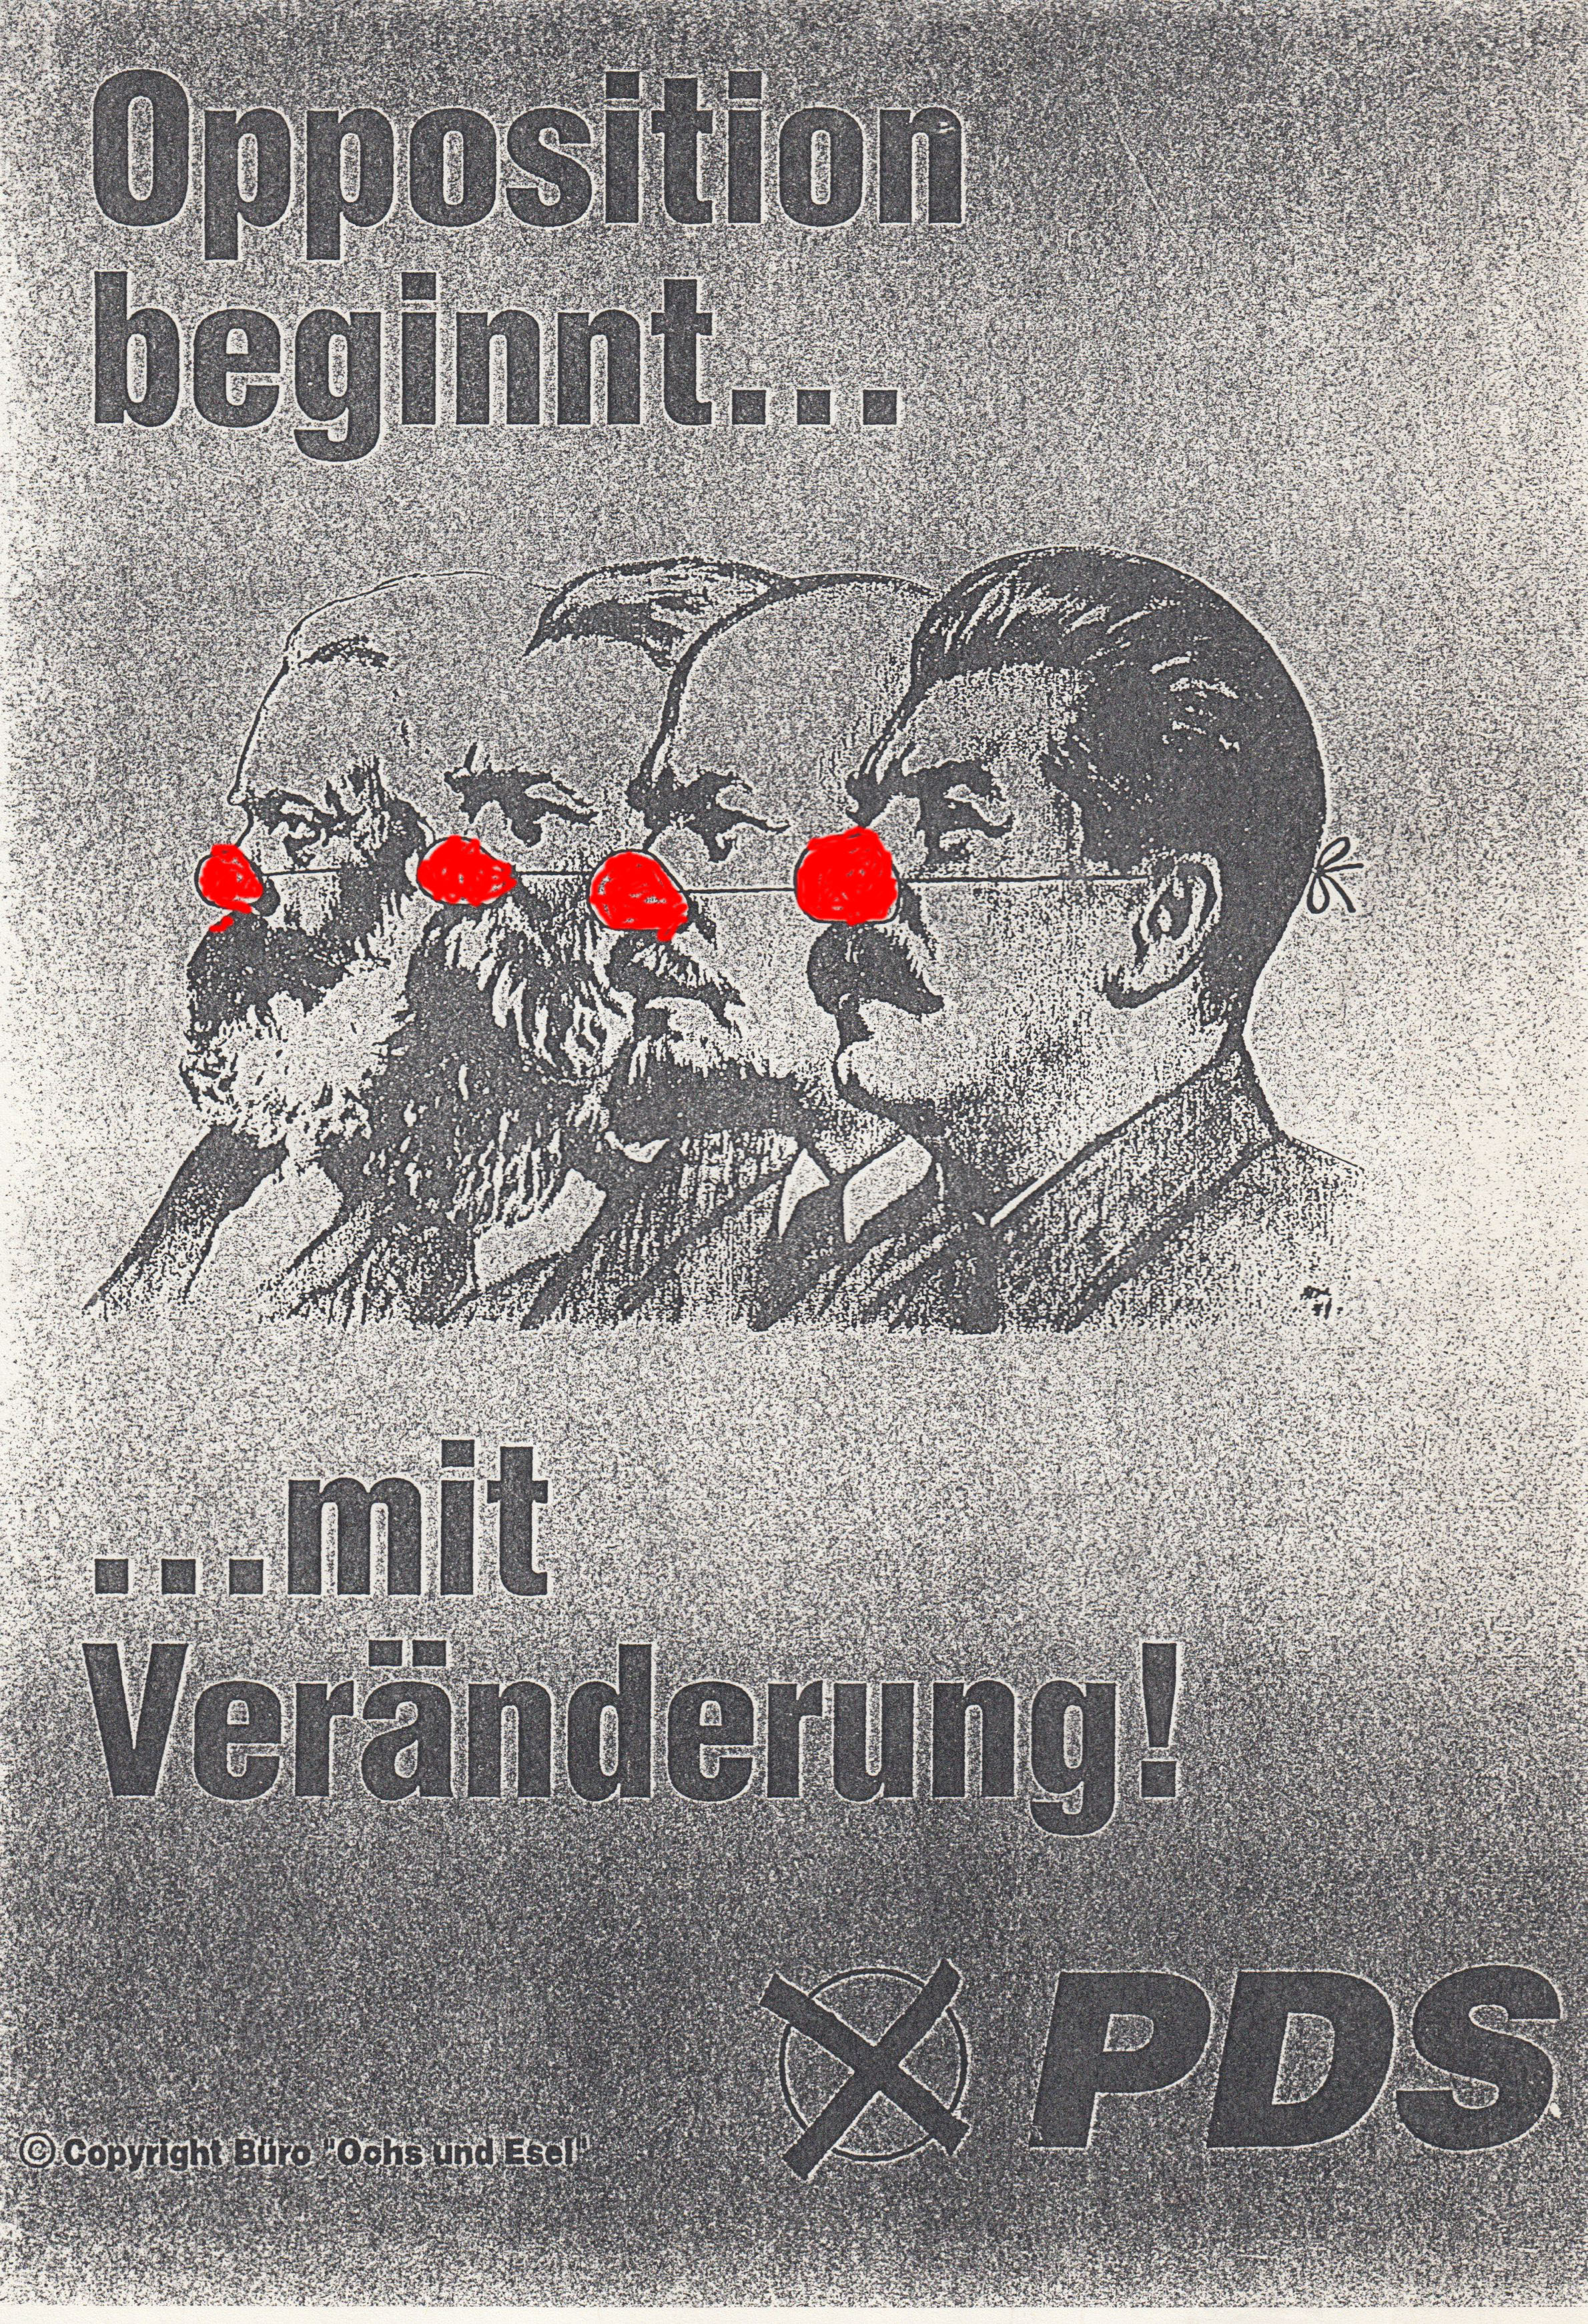 2016-04-17-1460896011-5216726-OppositionbeginntmitMarxEngelsLeninStalin02.jpg